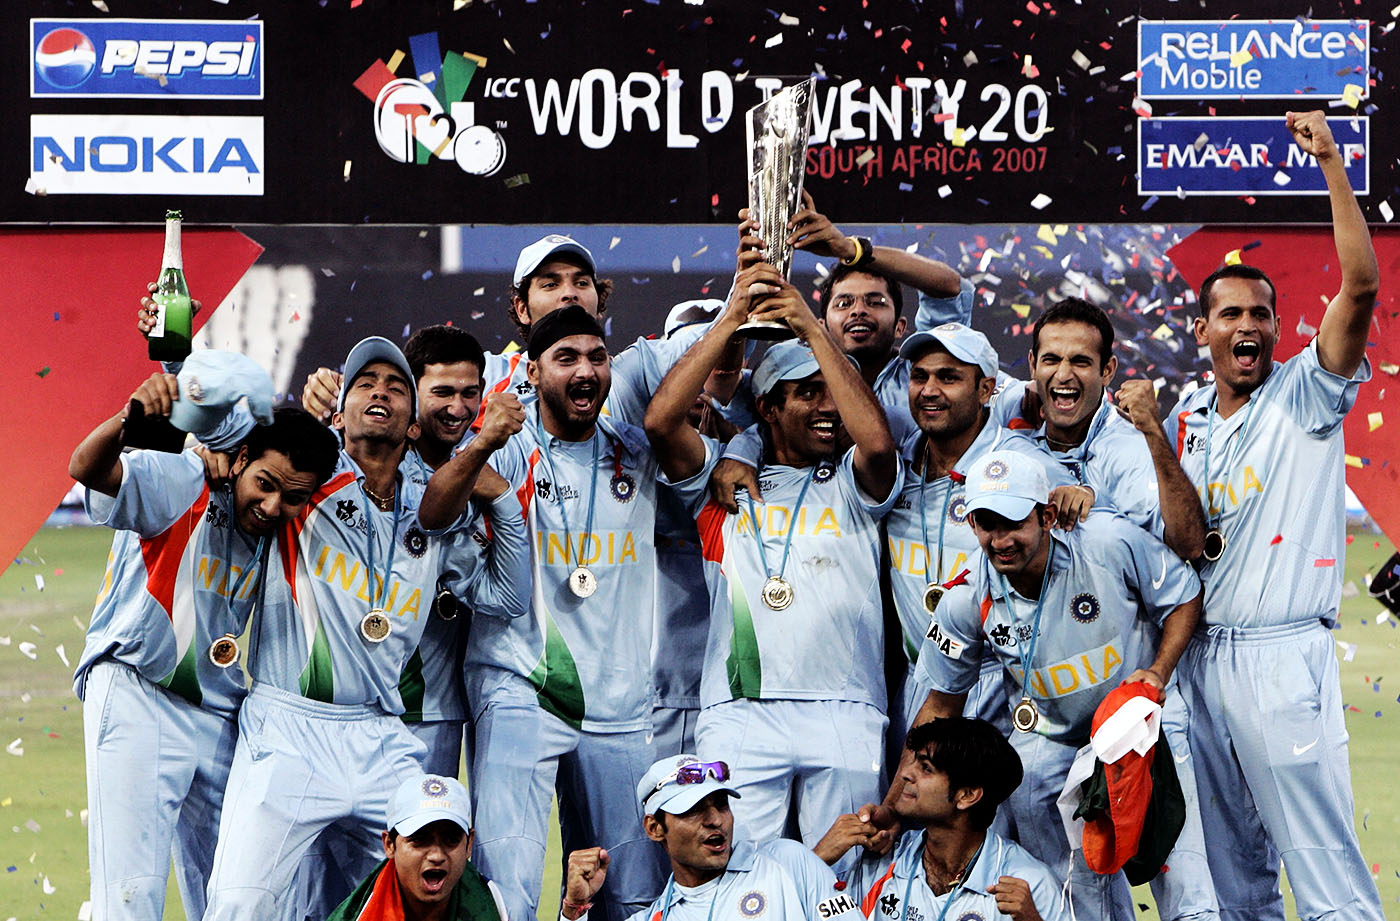 India lift the ICC World Twenty20 trophy at the end of a thrilling final against Pakistan • Sep 24, 2007 © AFP/Getty Images